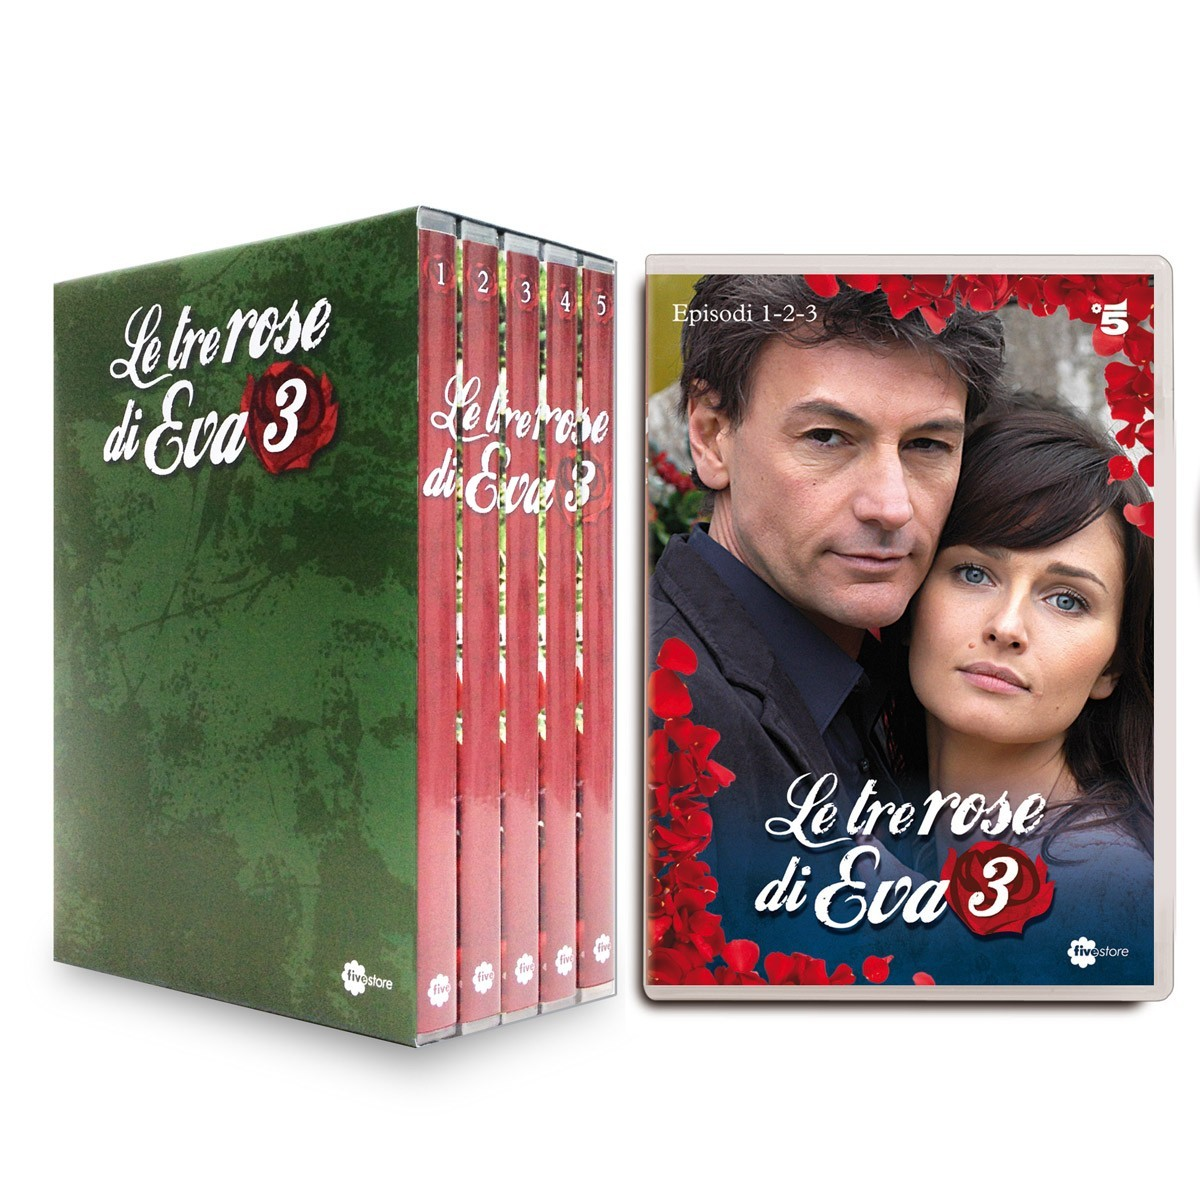 LE TRE ROSE DI EVA - SEASON 3 (5 DVD)